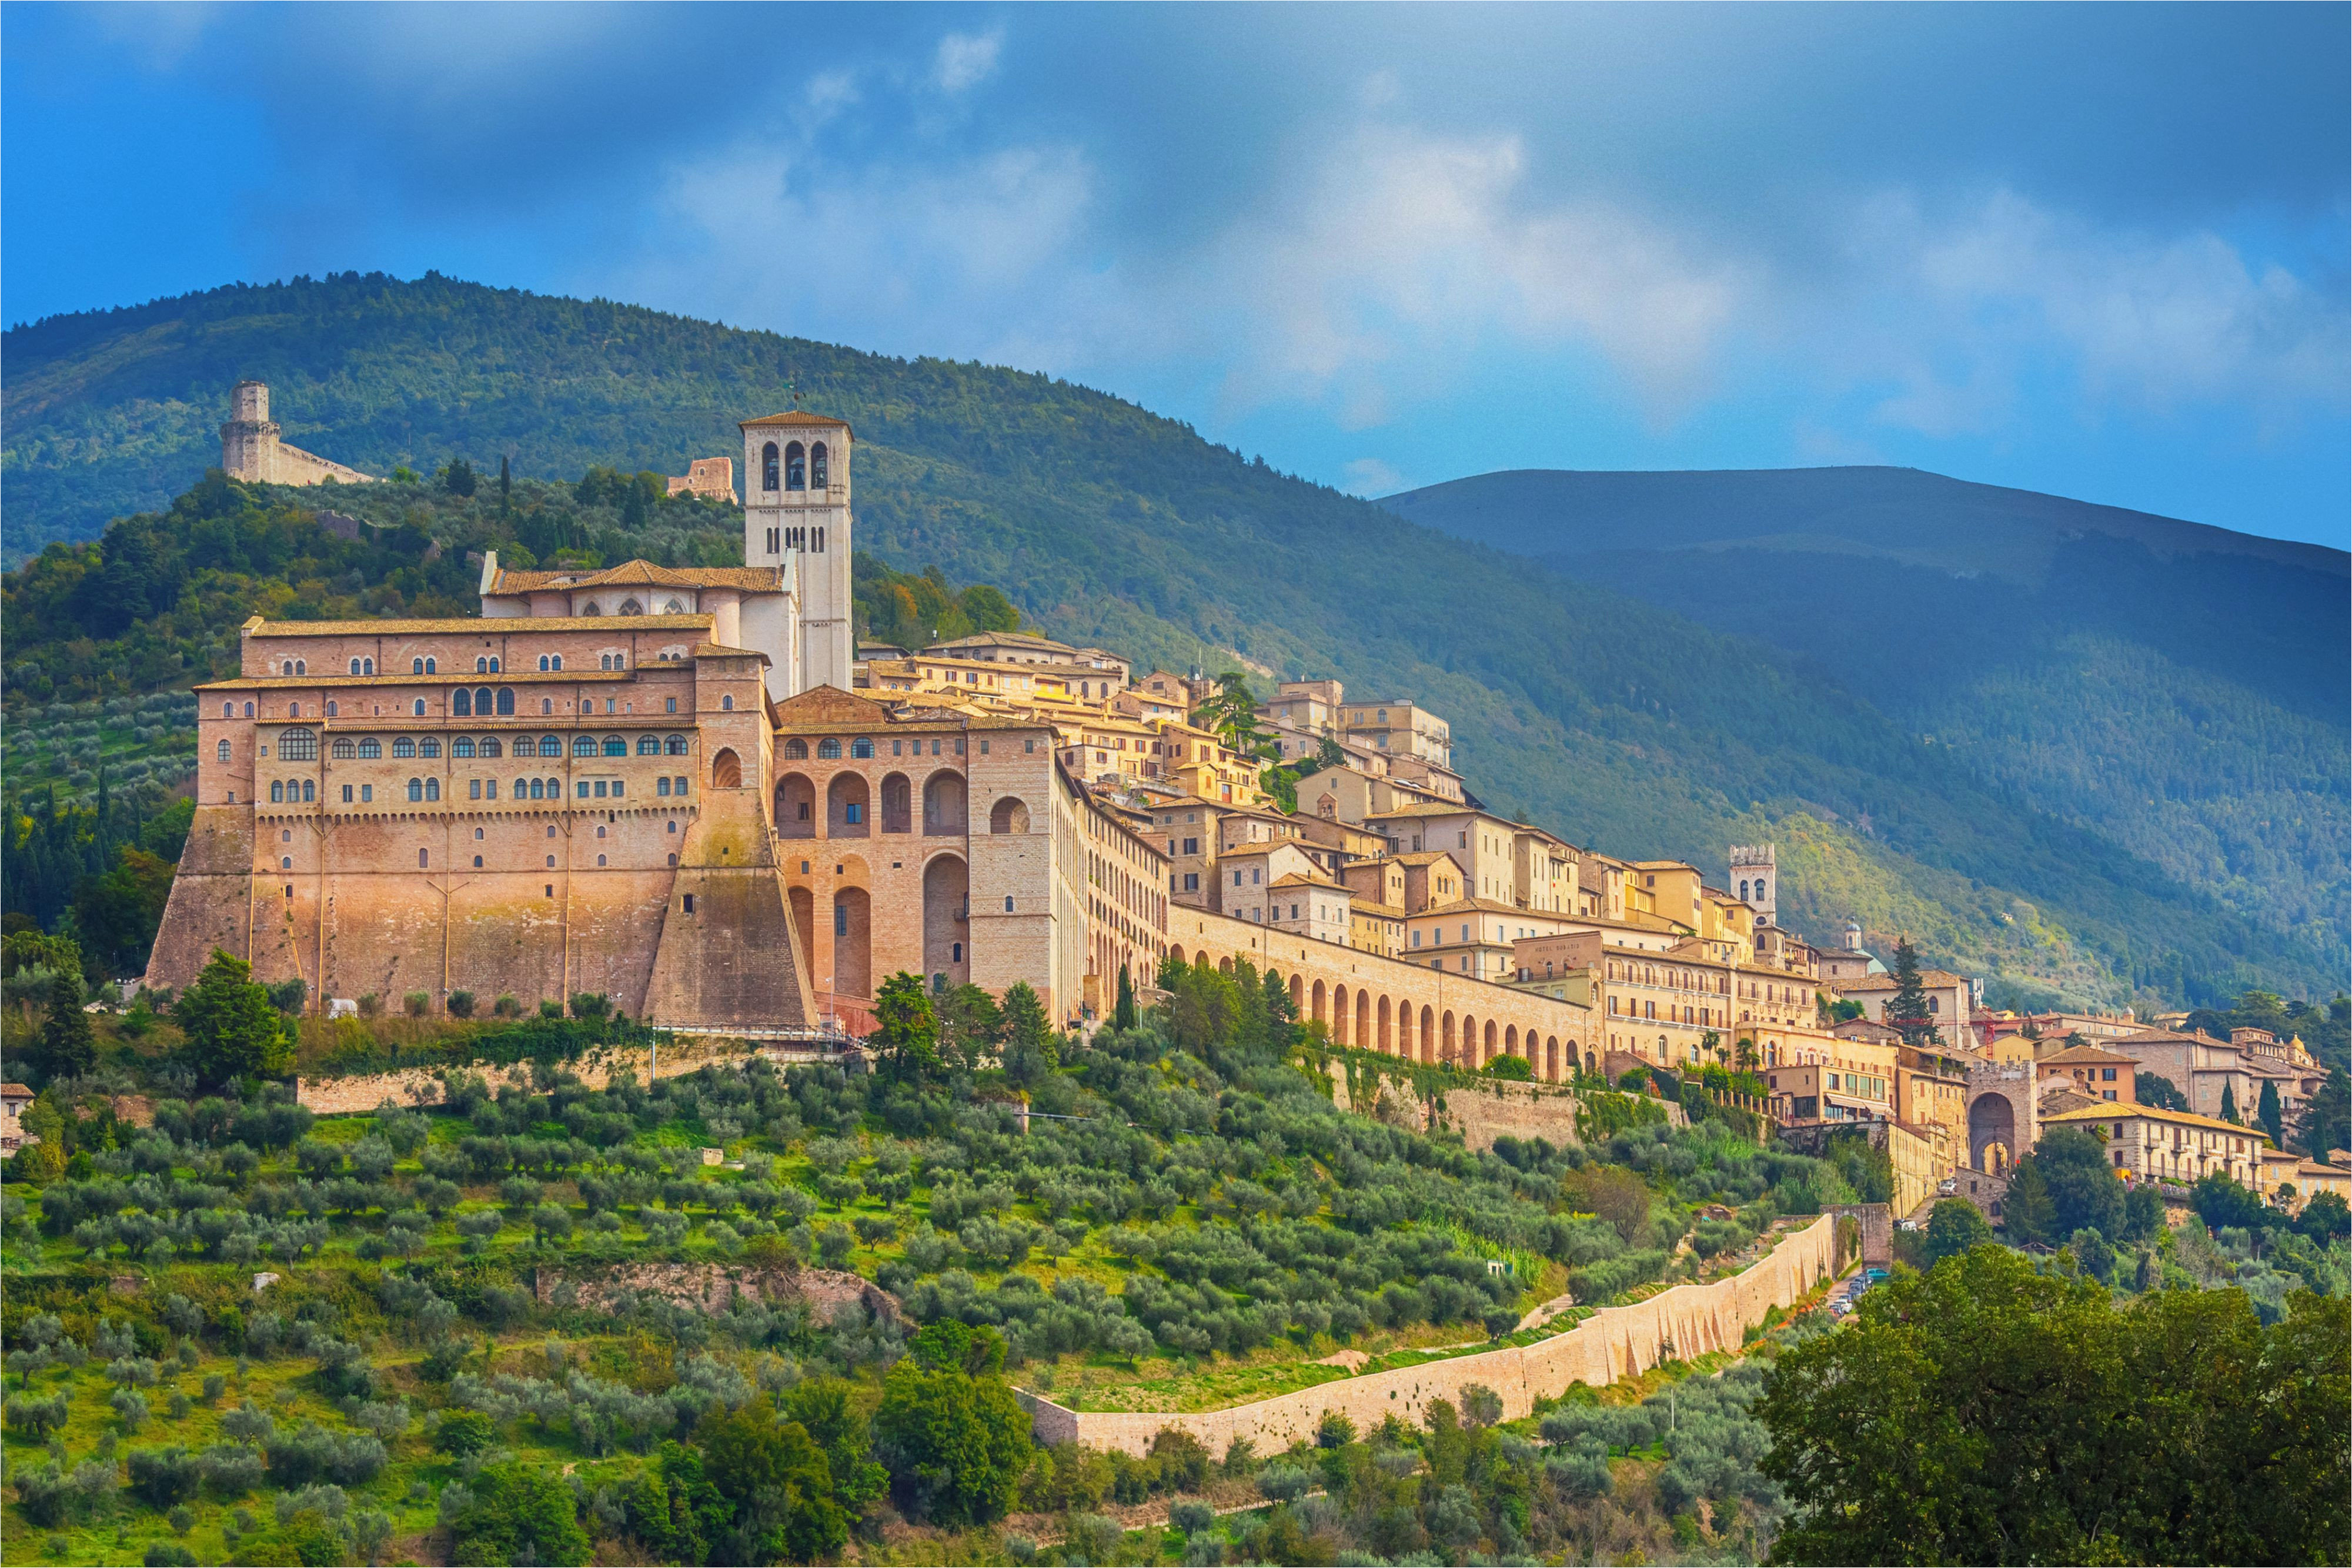 umbria italy best hill towns and places to go